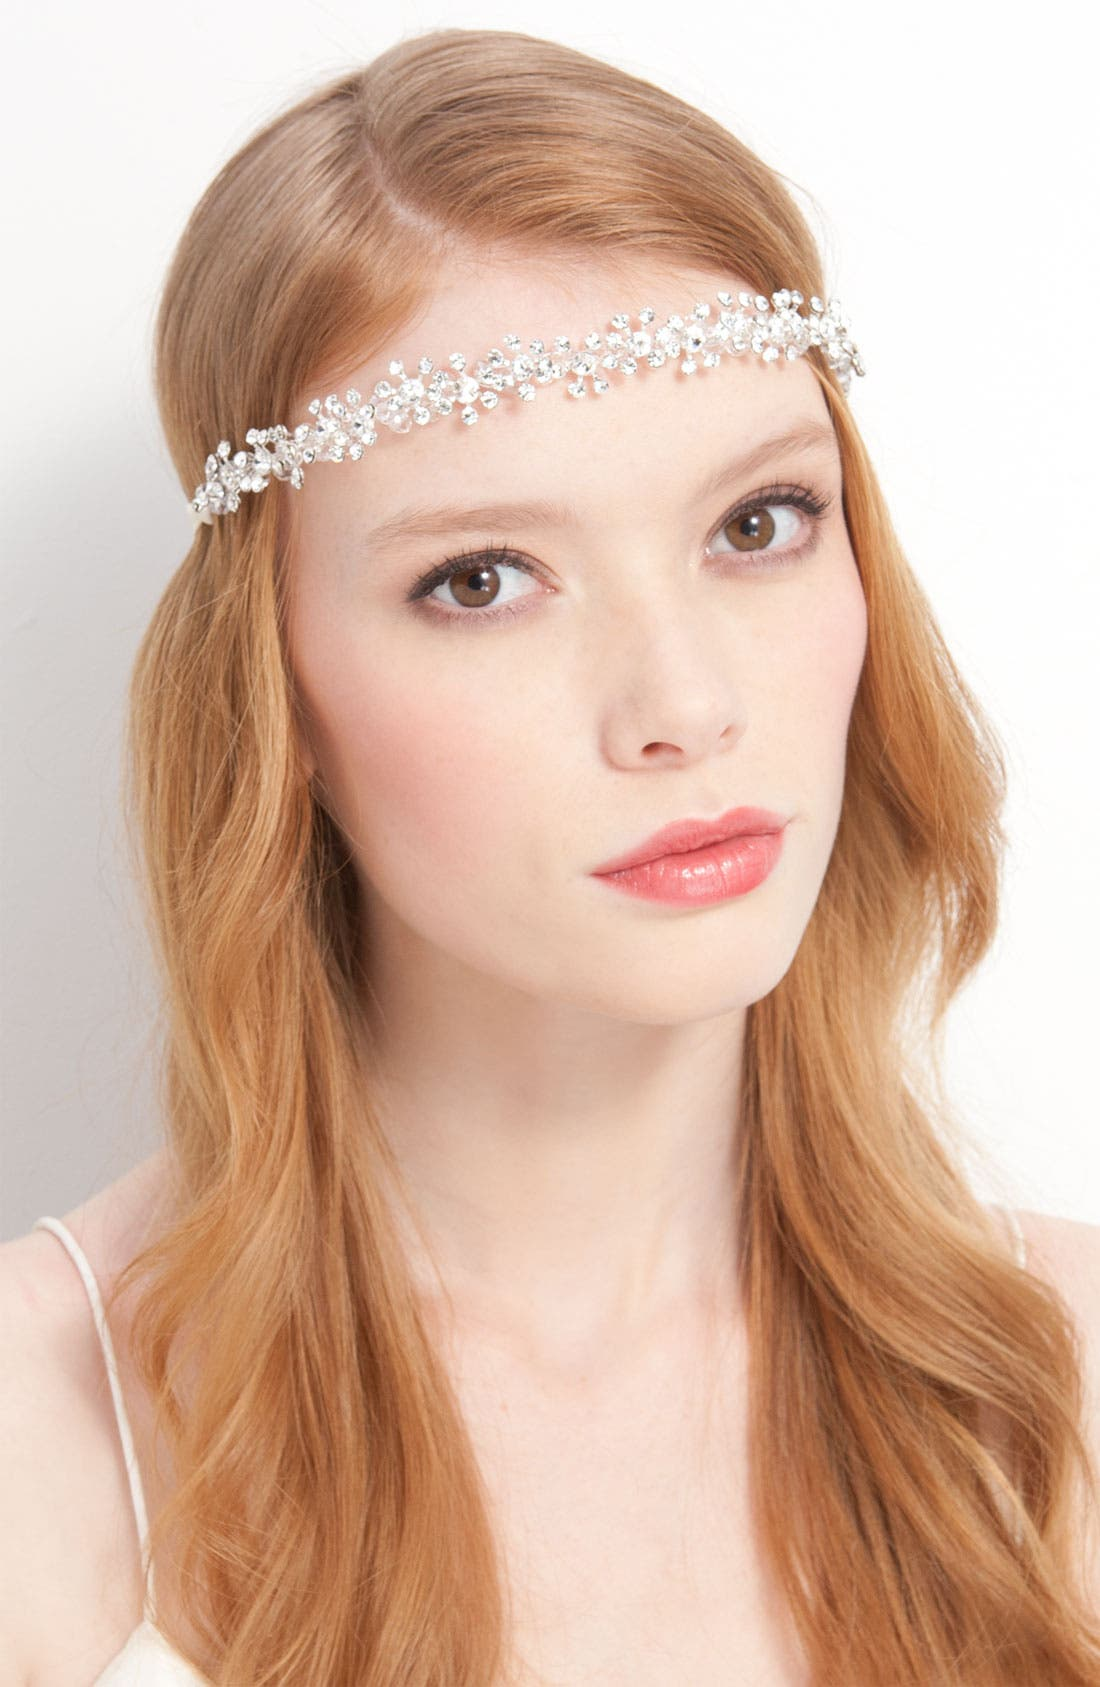 Main Image - Tasha 'Beautiful Crystal' Head Wrap